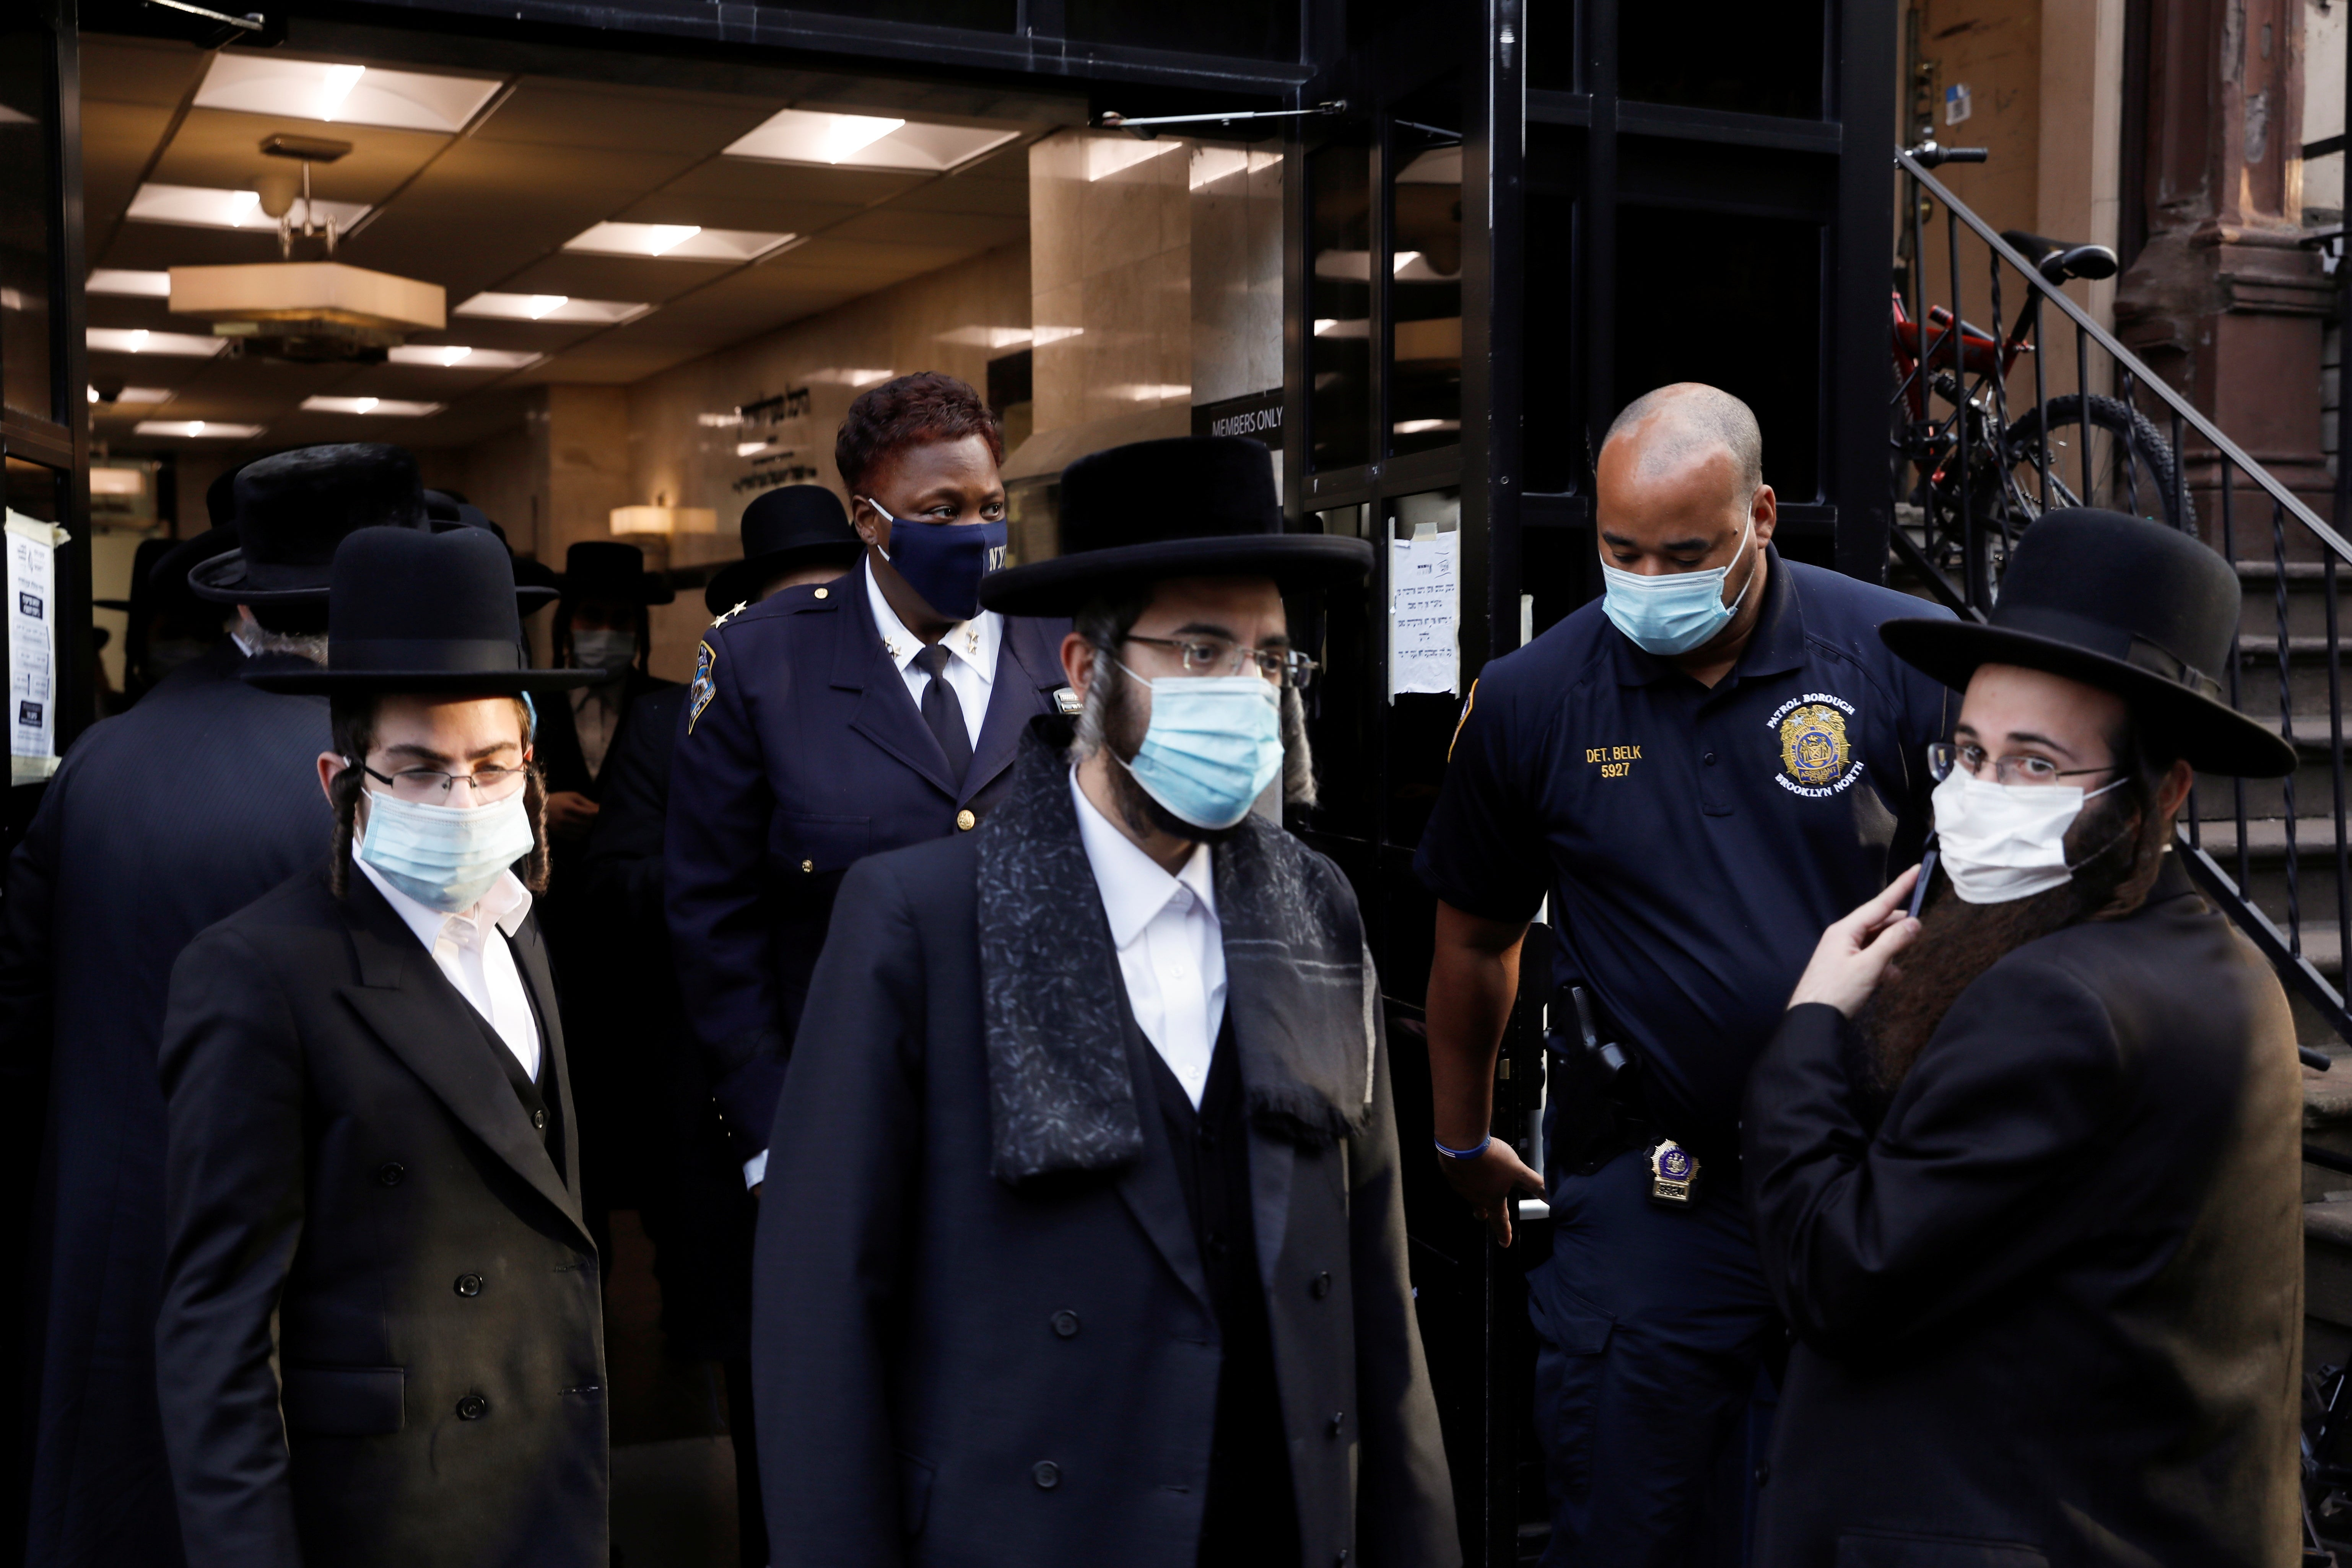 Amy Coney Barrett plays key role in overturning New York covid restrictions on religious gatherings - independent